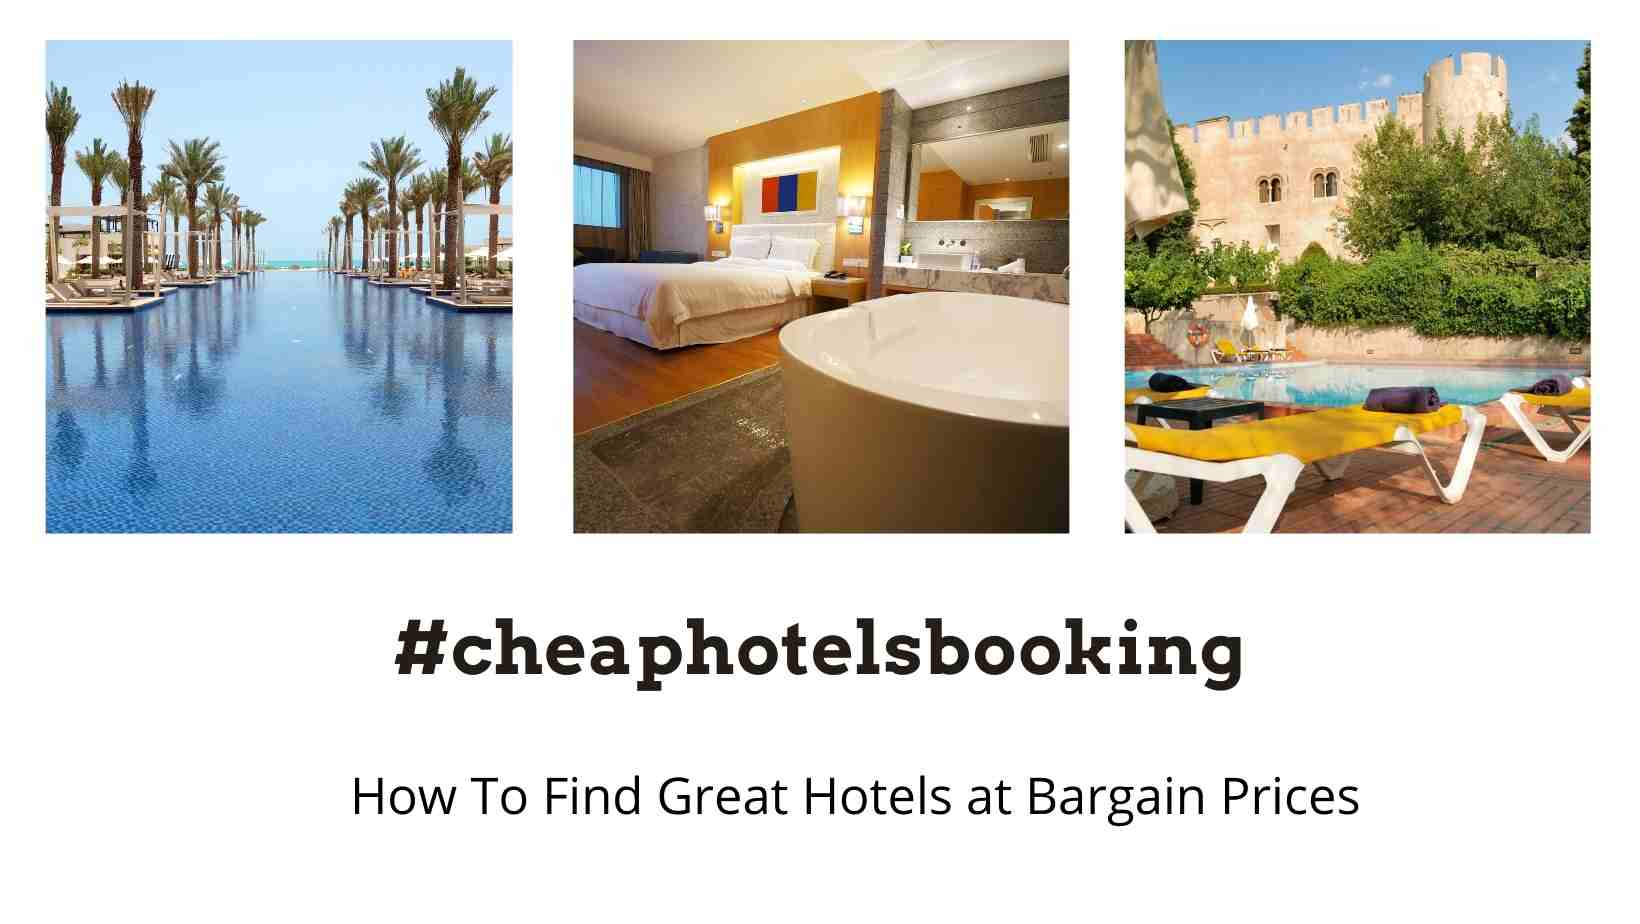 cheap hotels booking the professional traveller